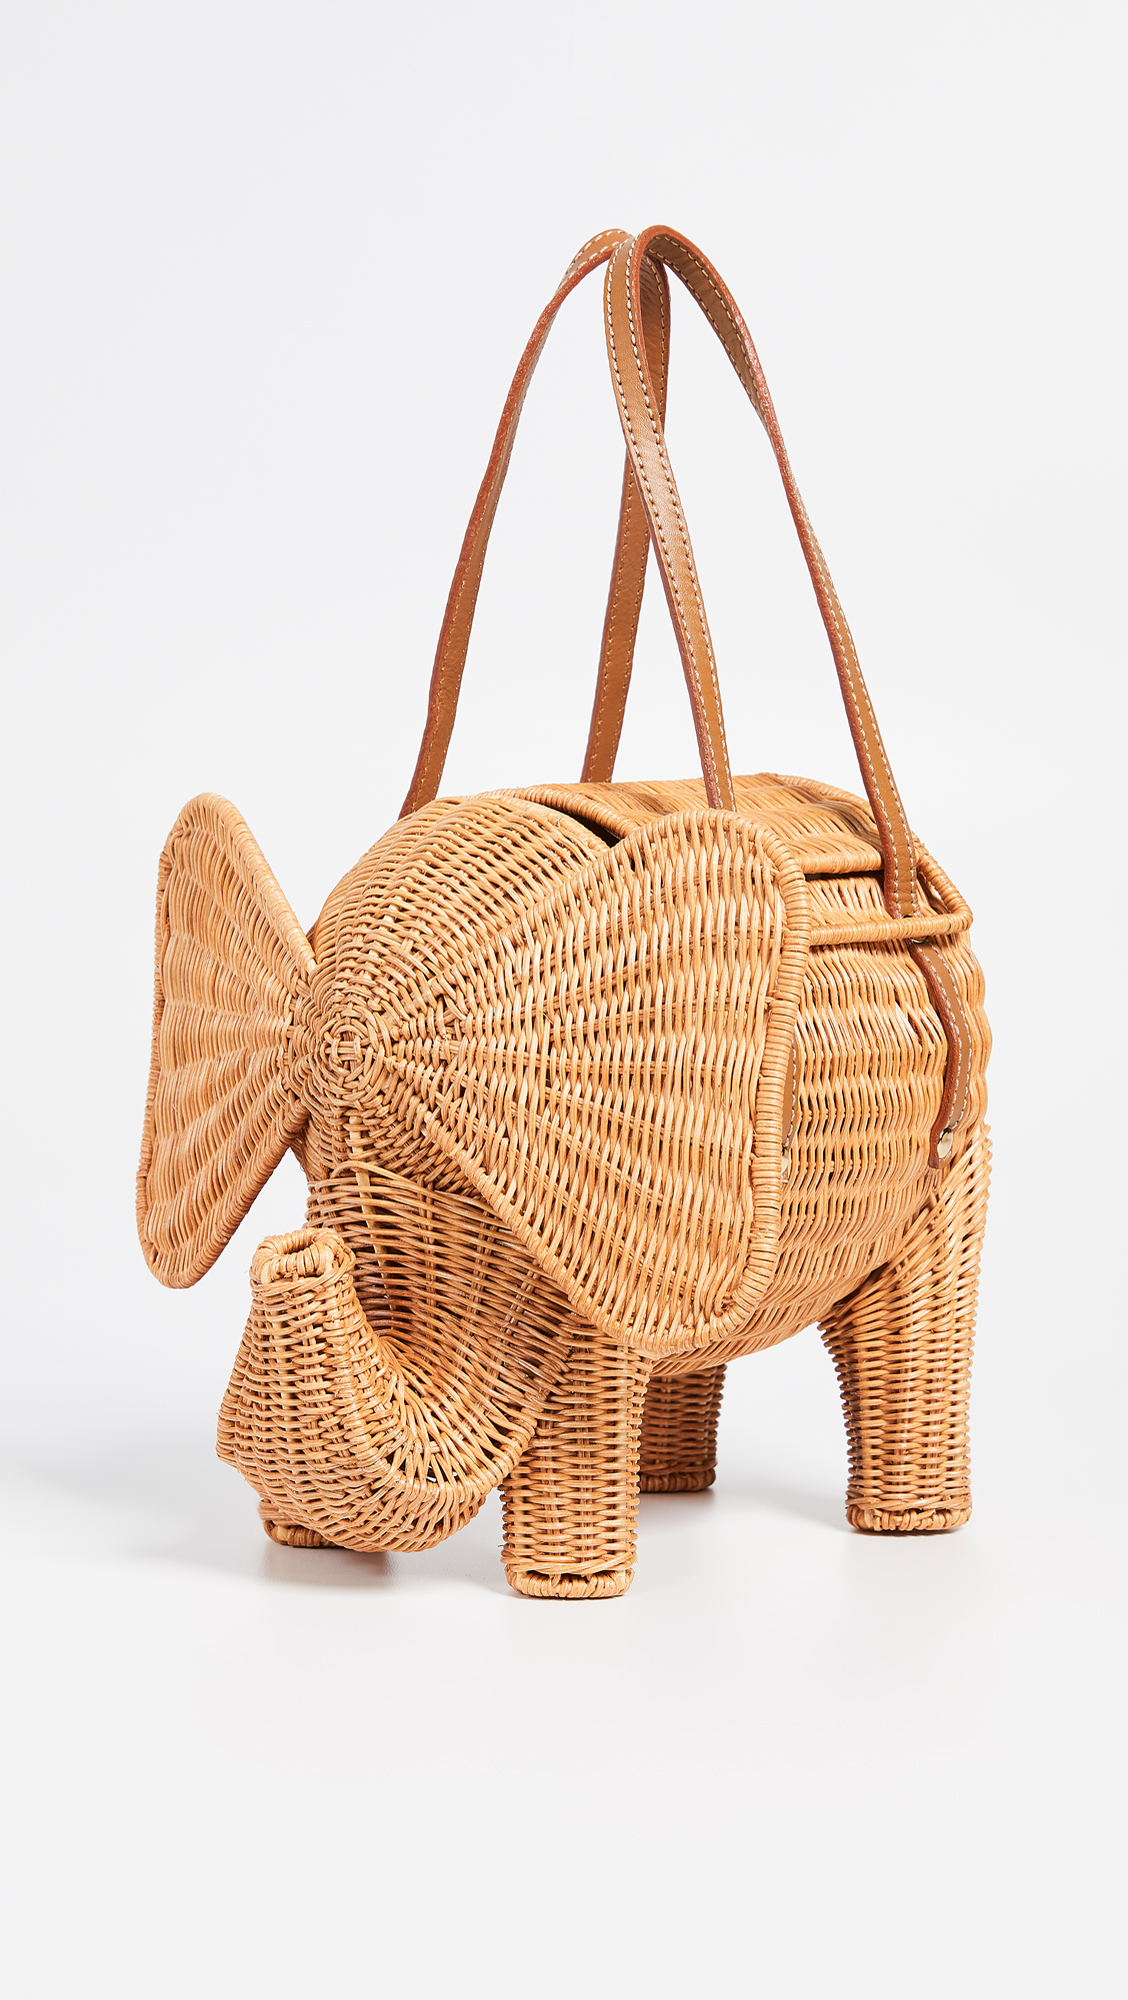 Bank Rattan The Daily Hunt Elephant Wicker Bag And More Katie Considers